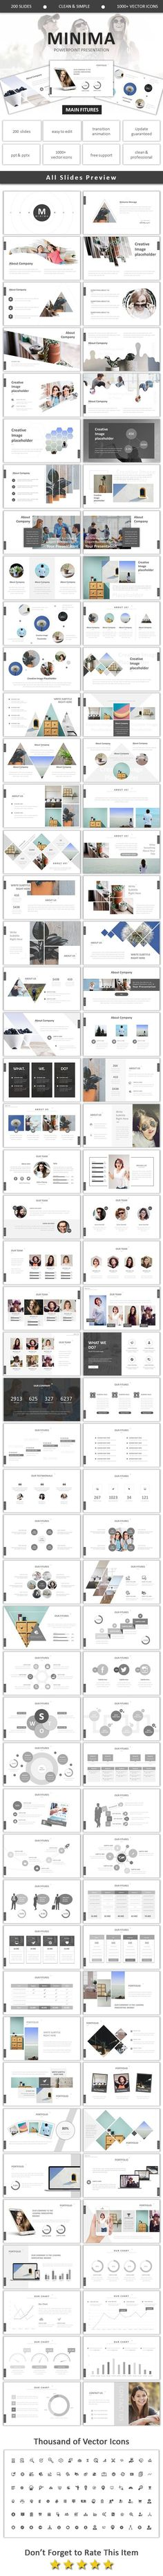 Minima Creative Powerpoint - Business PowerPoint Templates